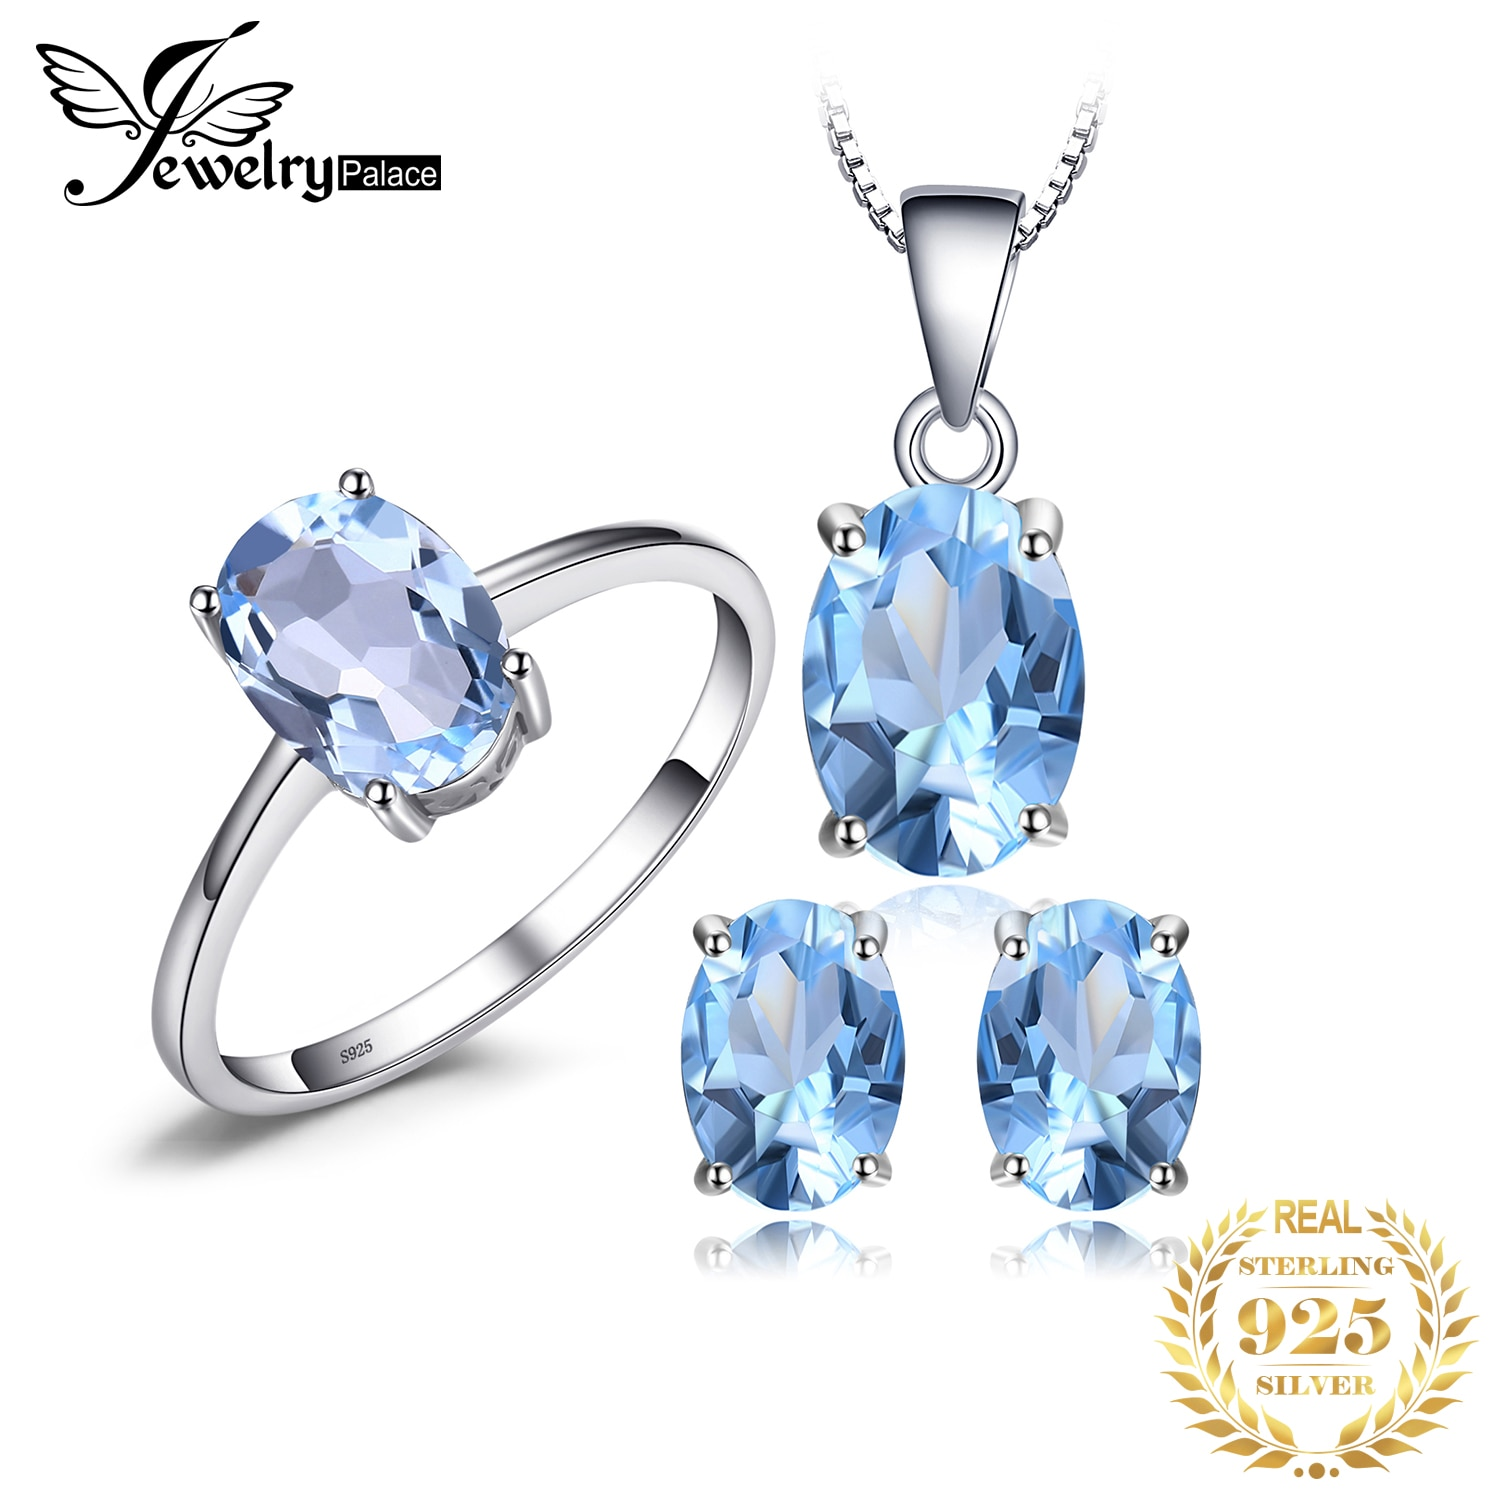 Sky Blue Topaz Chain Pendant Necklace Earrings Ring Set 925 Sterling Silver Gemstones Jewelry Sets Silver 925 Jewelry For Women 925 sterling silver opal stone wedding bridal jewelry sets earrings for women costume jewelry pendant necklace ring set gift box